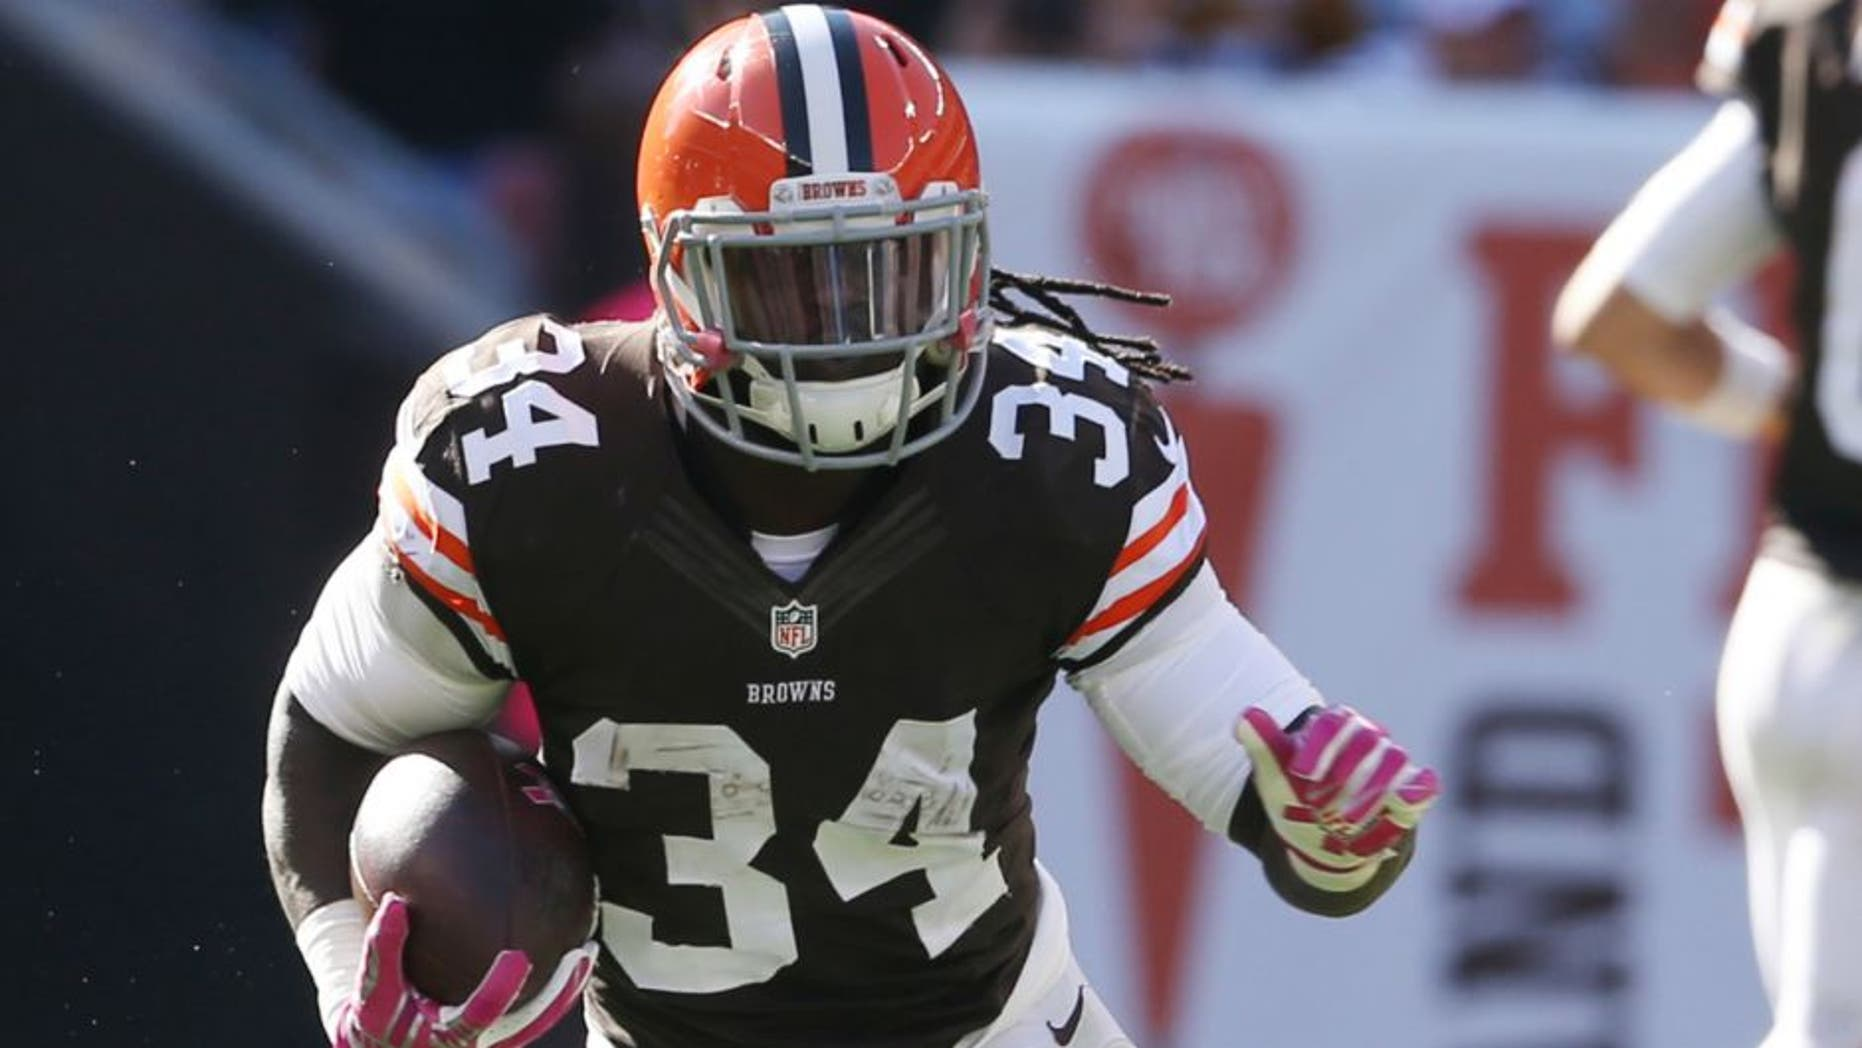 Oct 12, 2014; Cleveland, OH, USA; Cleveland Browns running back Isaiah Crowell (34) against the Pittsburgh Steelers during the fourth quarter at FirstEnergy Stadium. The Browns won 31-10. Mandatory Credit: Ron Schwane-USA TODAY Sports